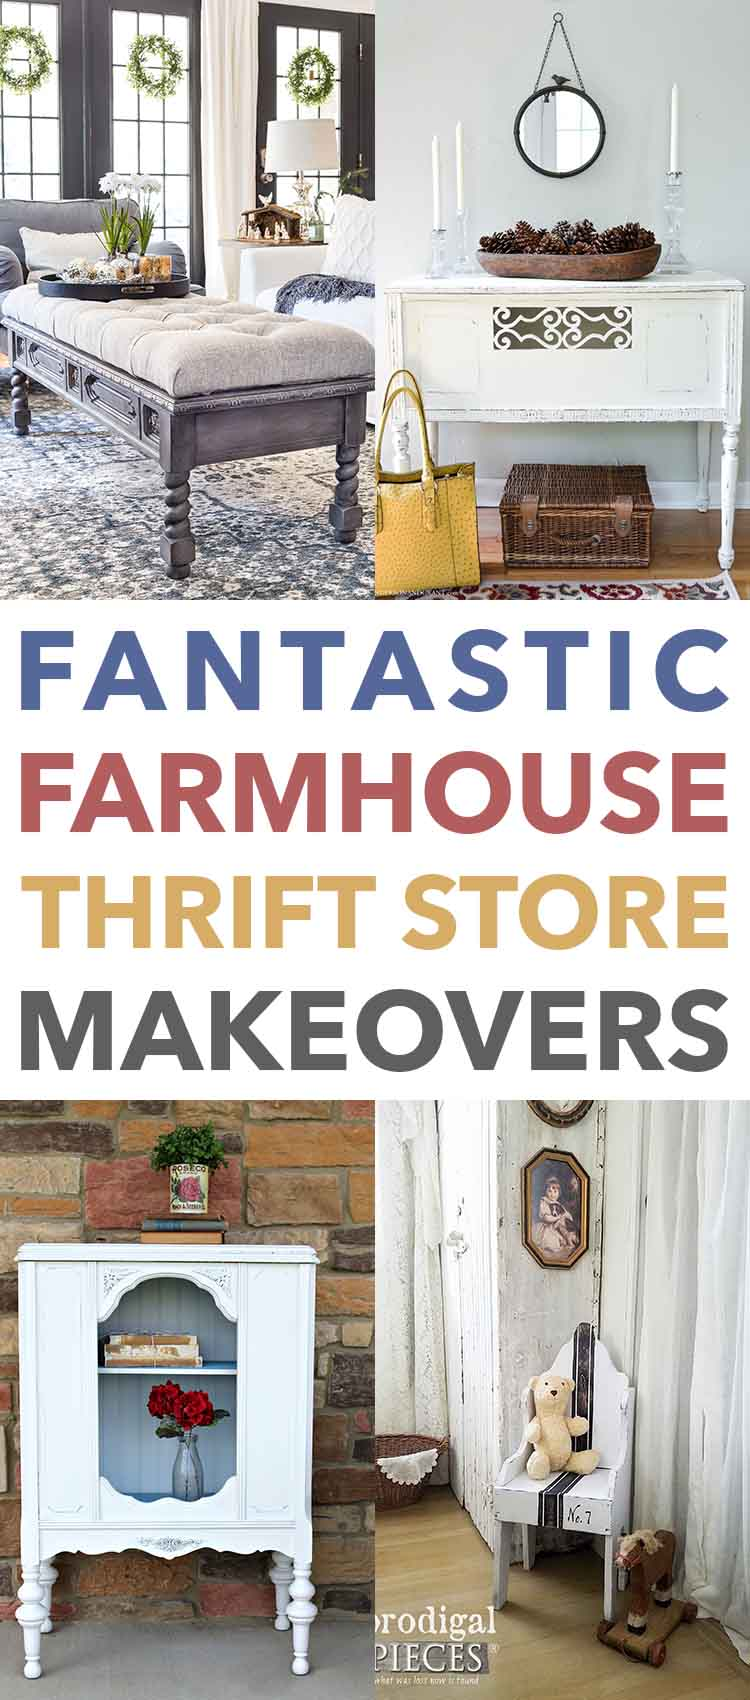 These farmhouse thrift store makeovers are easy and adorable.